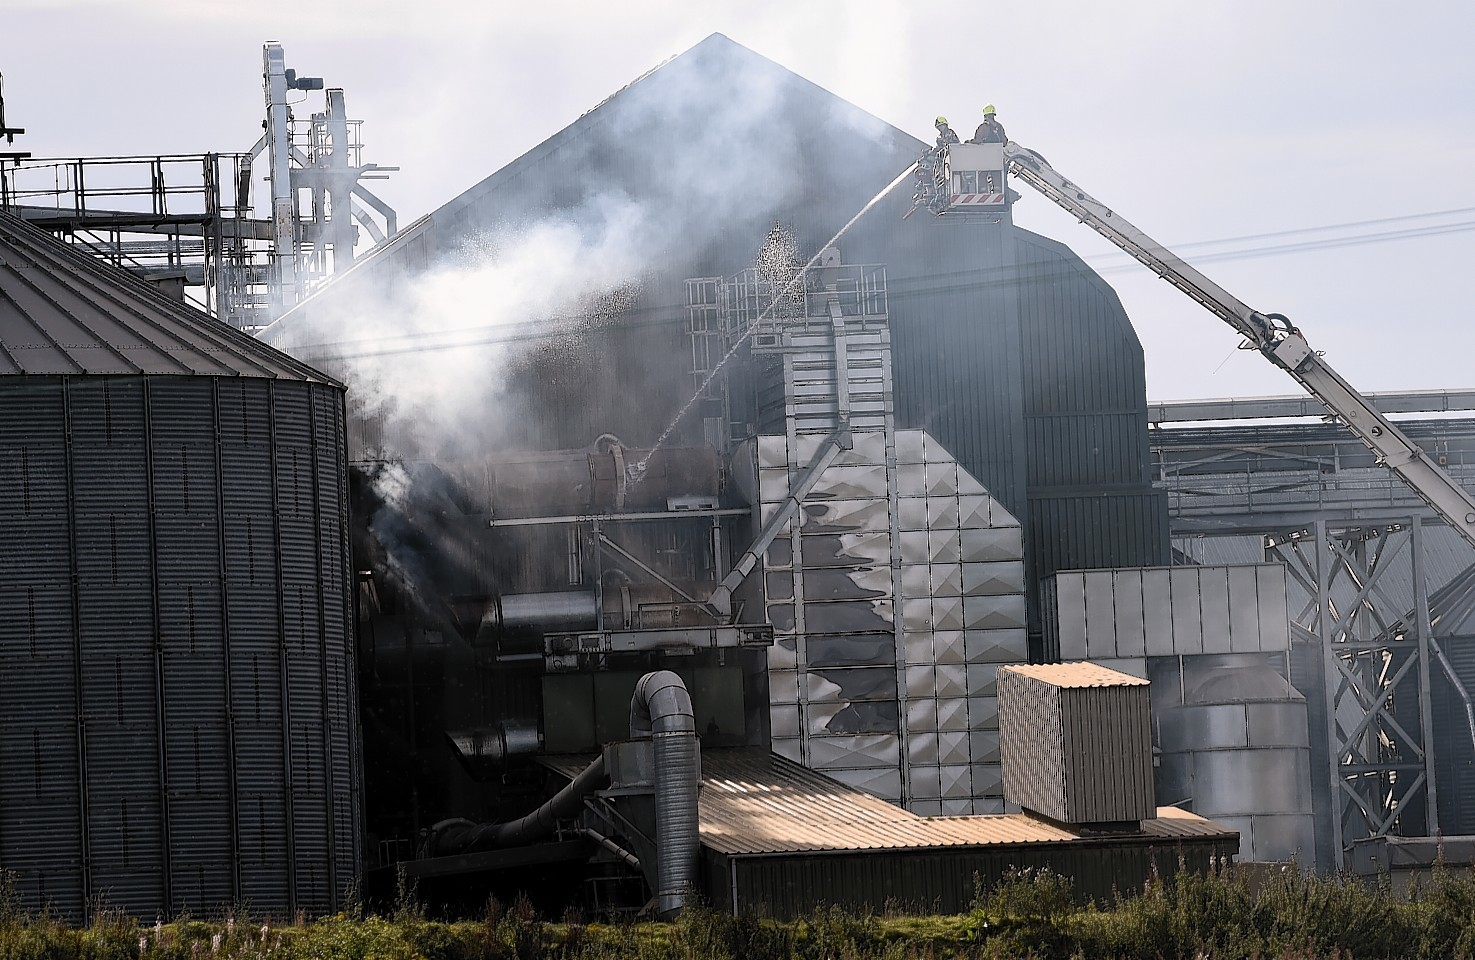 Firefighters hose down the fire in a grain drier at Tore, near Inverness. Picture by Gordon Lennox